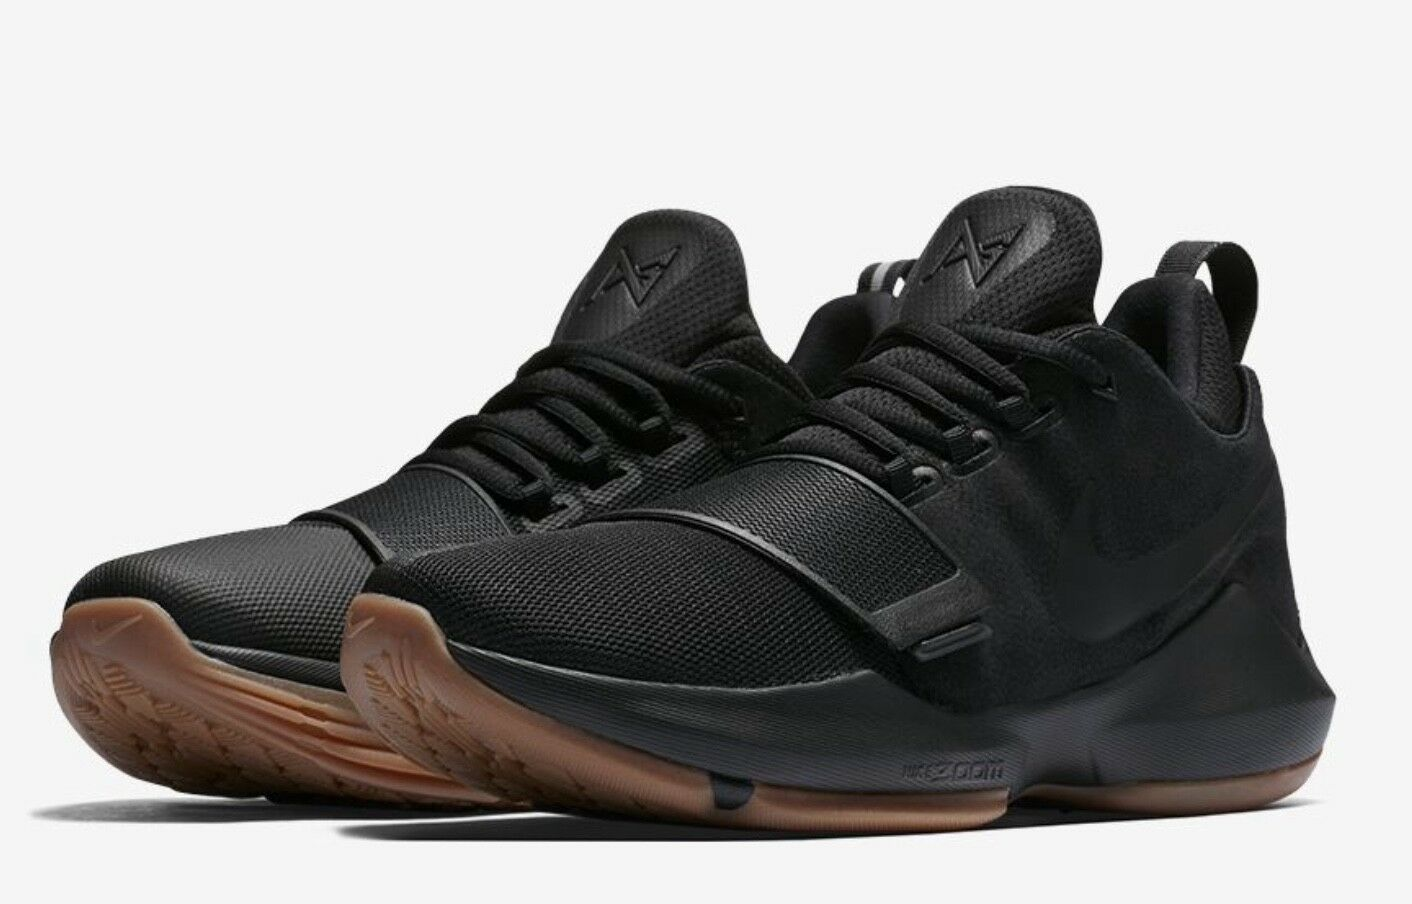 huge selection of b2b0e a4f75 chaussures nike pg 1 masculine de basket basket basket 878627-004 uk7    eu41   us8 d86a5b